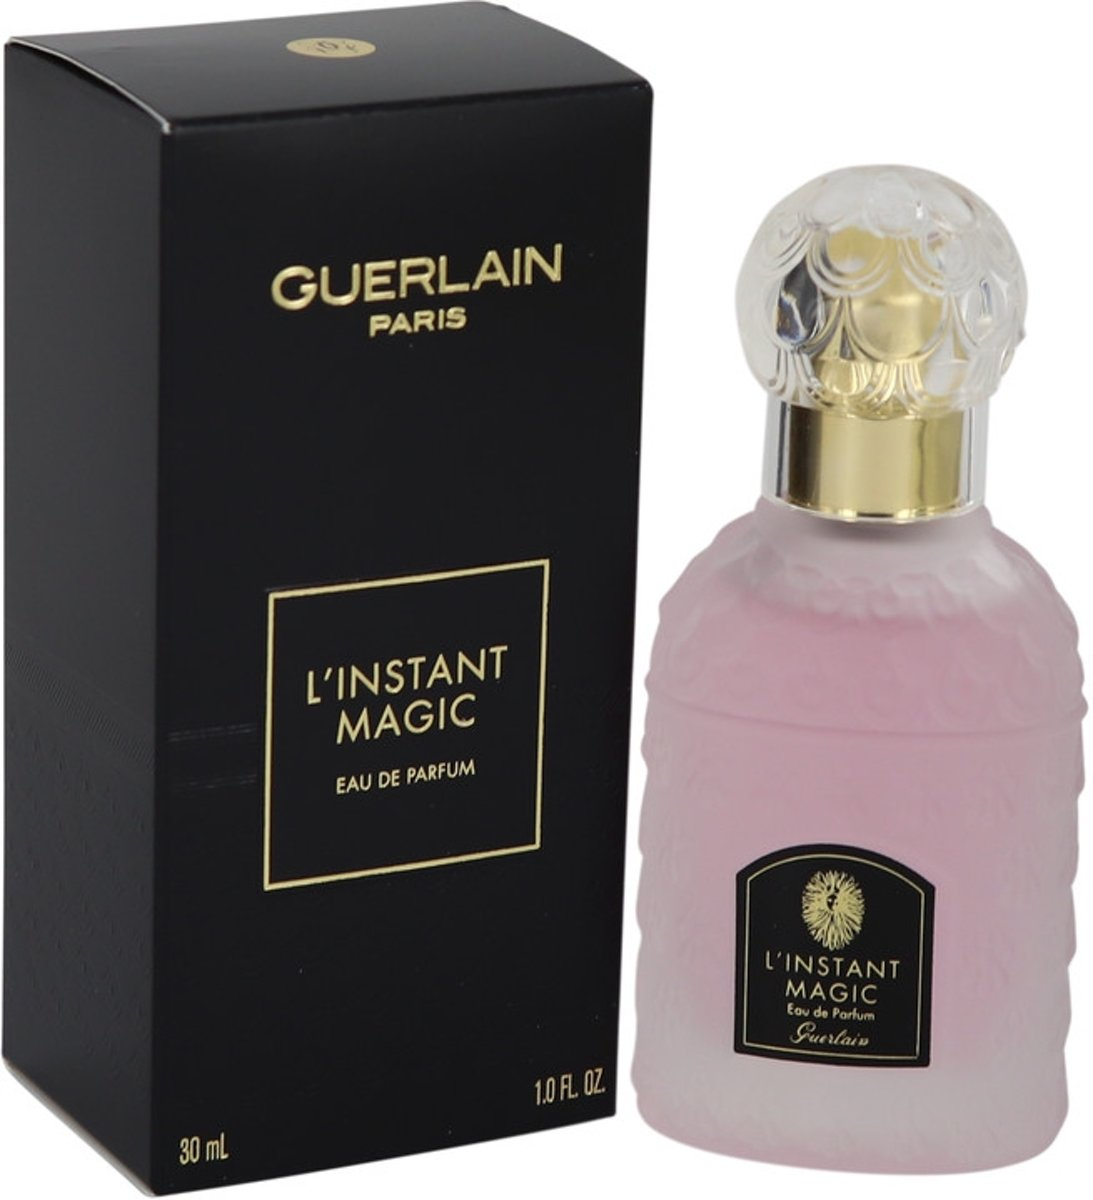 Guerlain LInstant Magic - 30 ml - Eau de Parfum